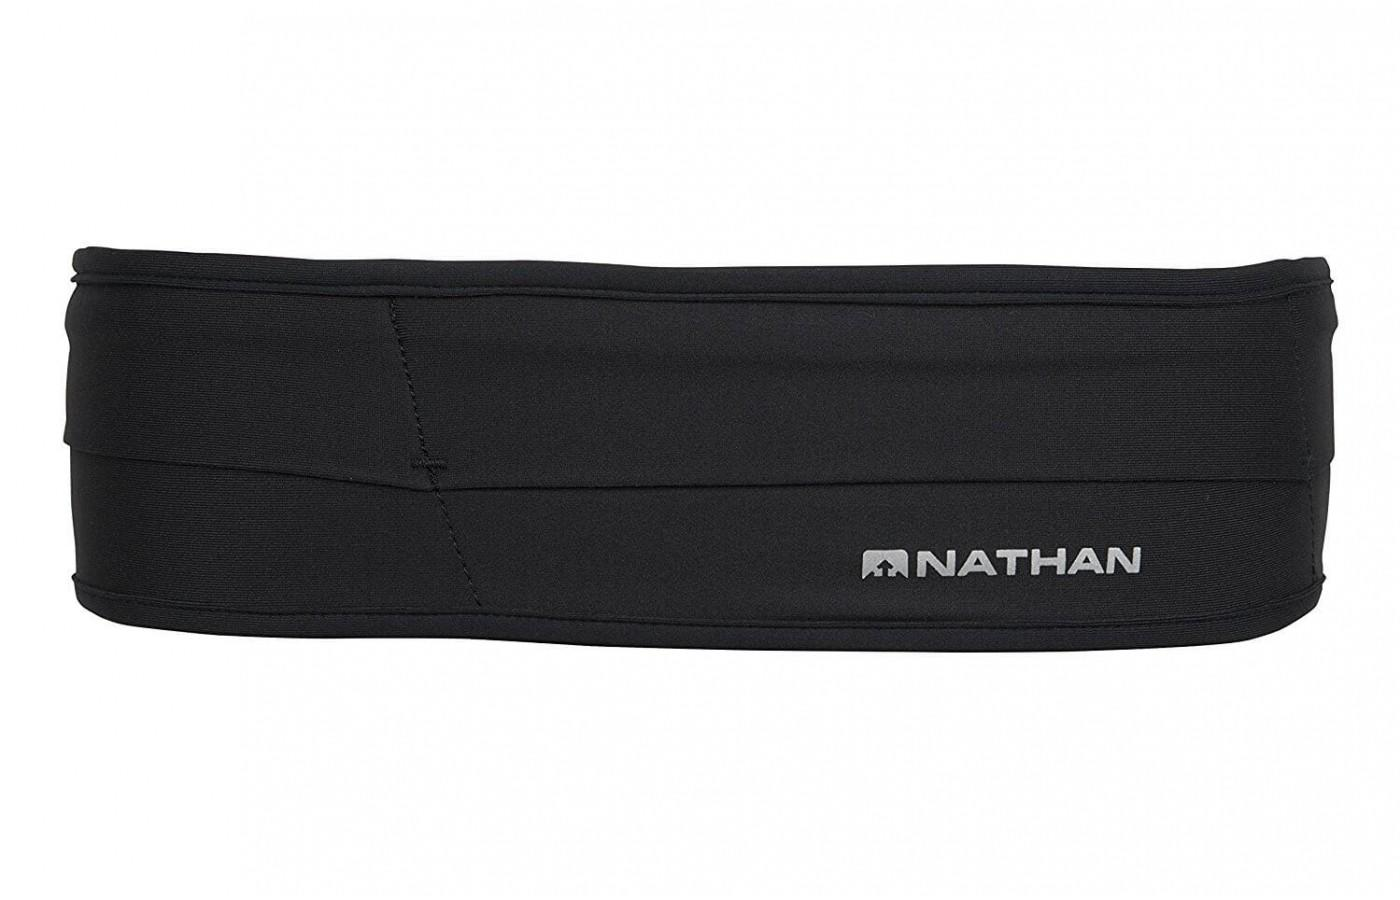 The Nathan The Hipster Running Belt fits phones as big as the iPhone 7 Plus